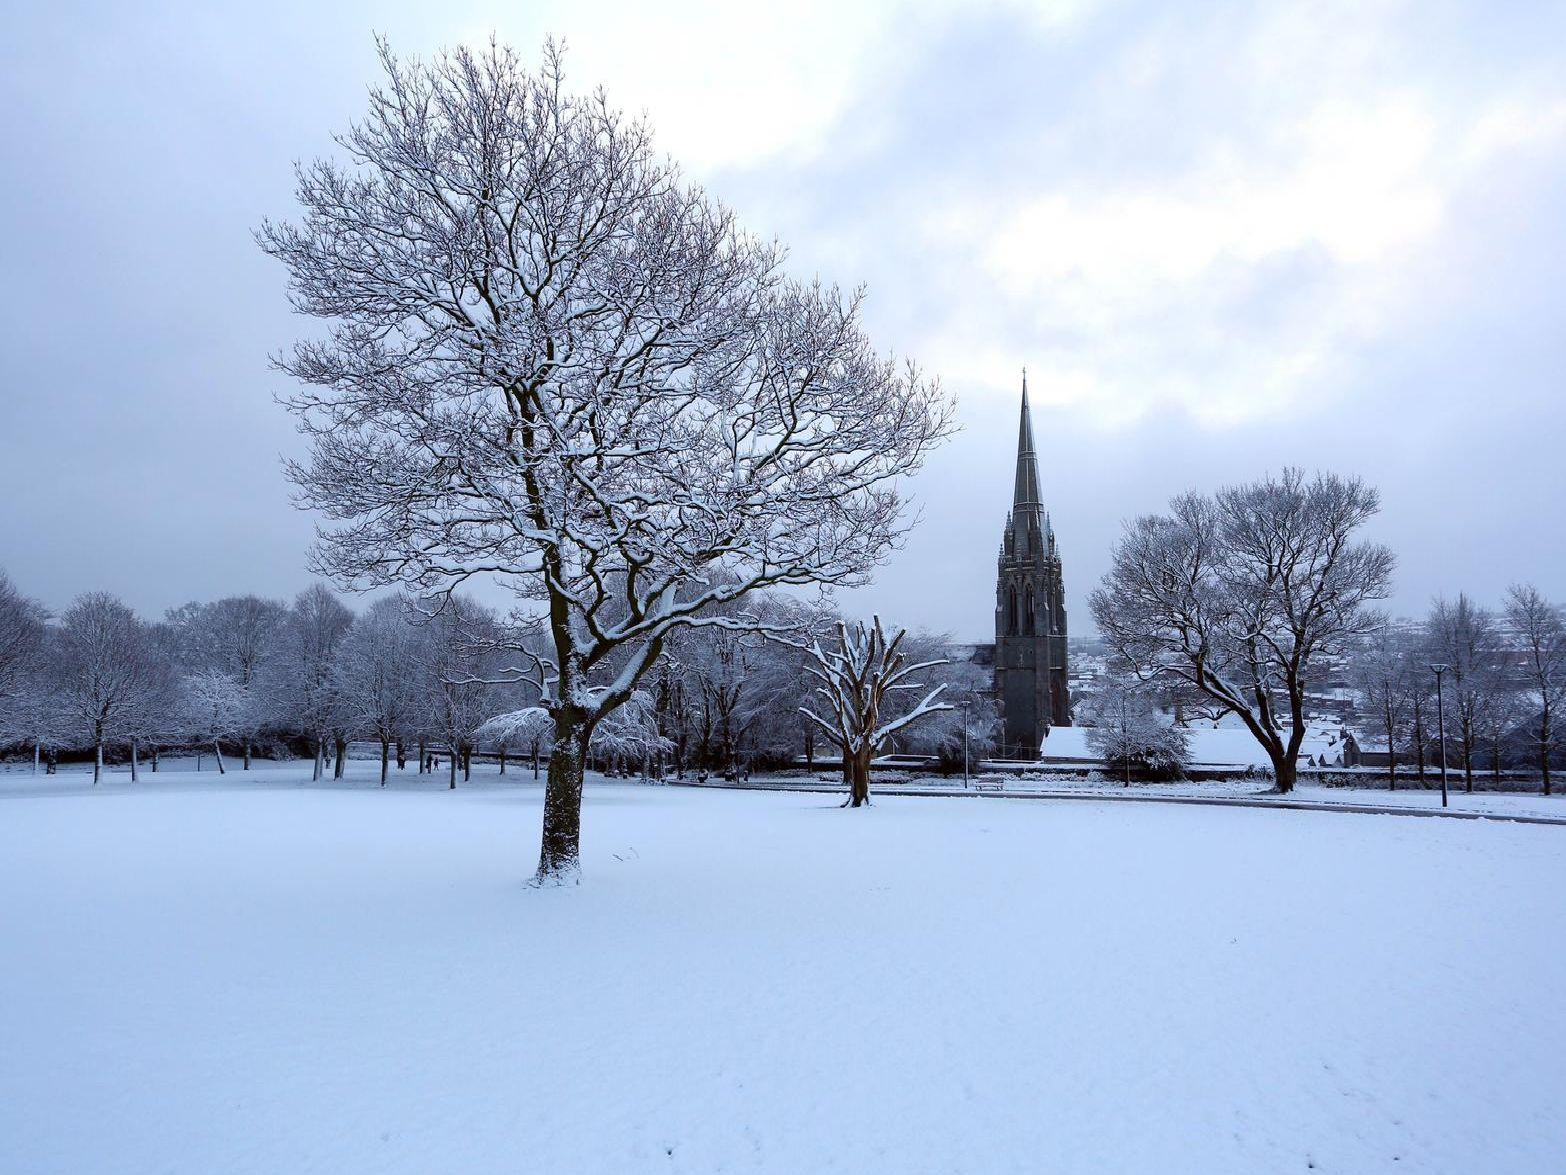 Brooke Park in the snow.